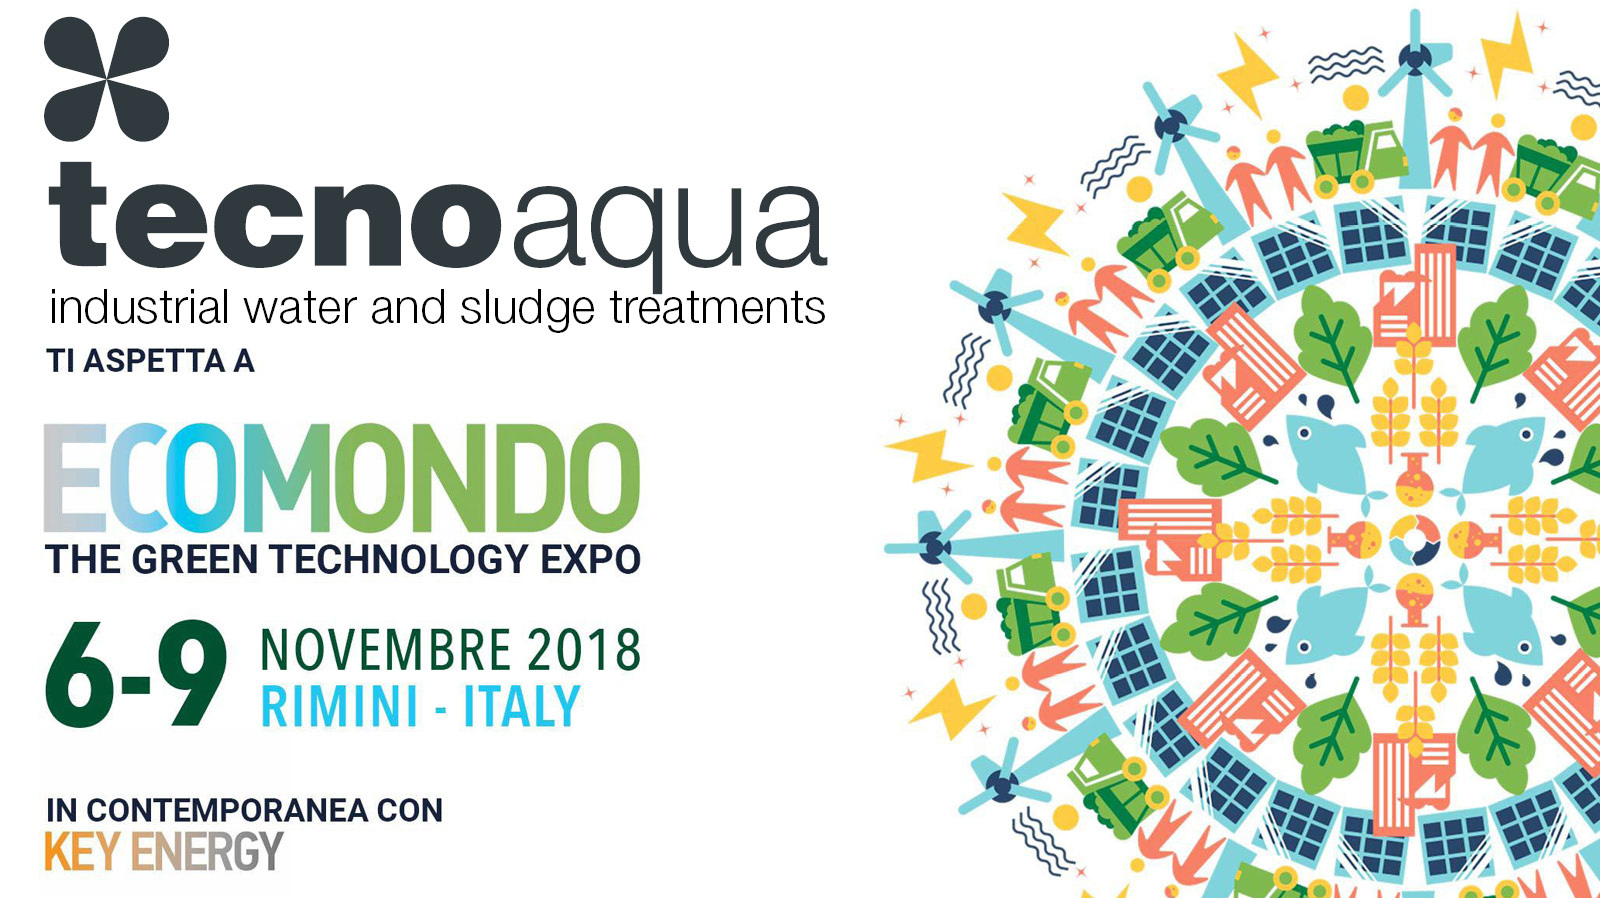 Tecno Aqua at ECOMONDO 2018 - Rimini (Italy), Nov 6th-9th, 2018